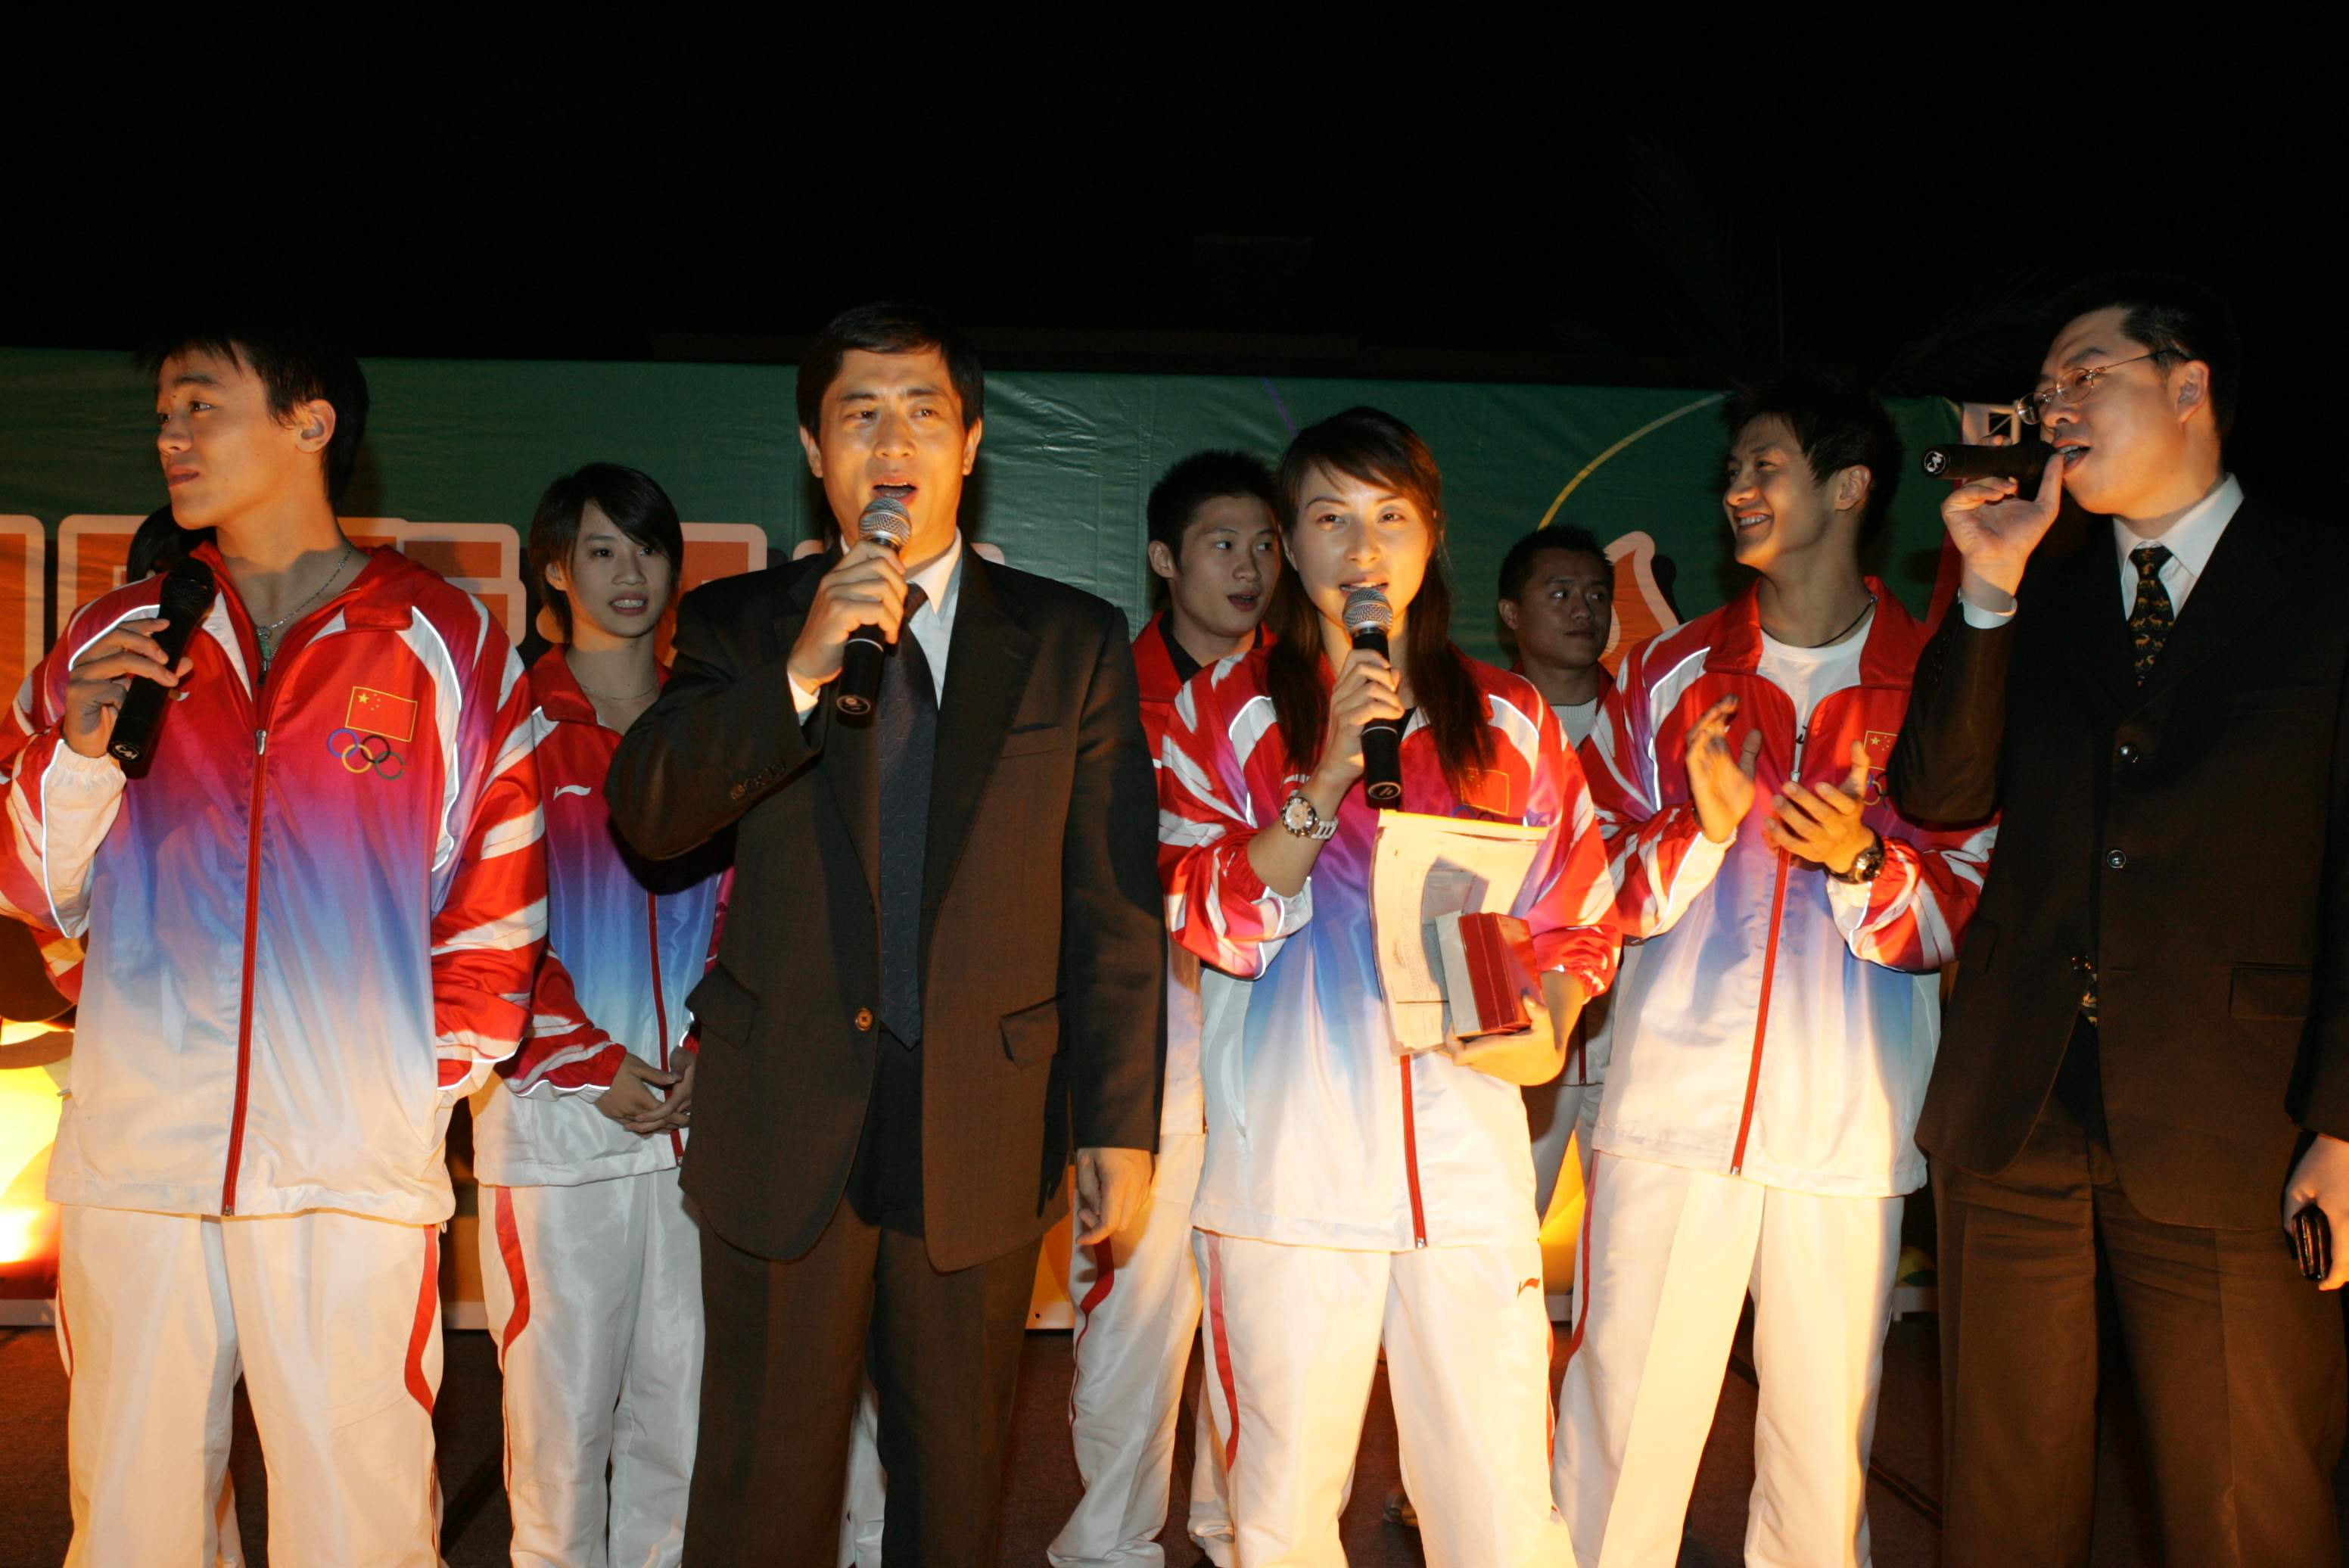 Singing at the Homeland Hotel with Tian Liang, Guo Jingjing and other Olympic champions